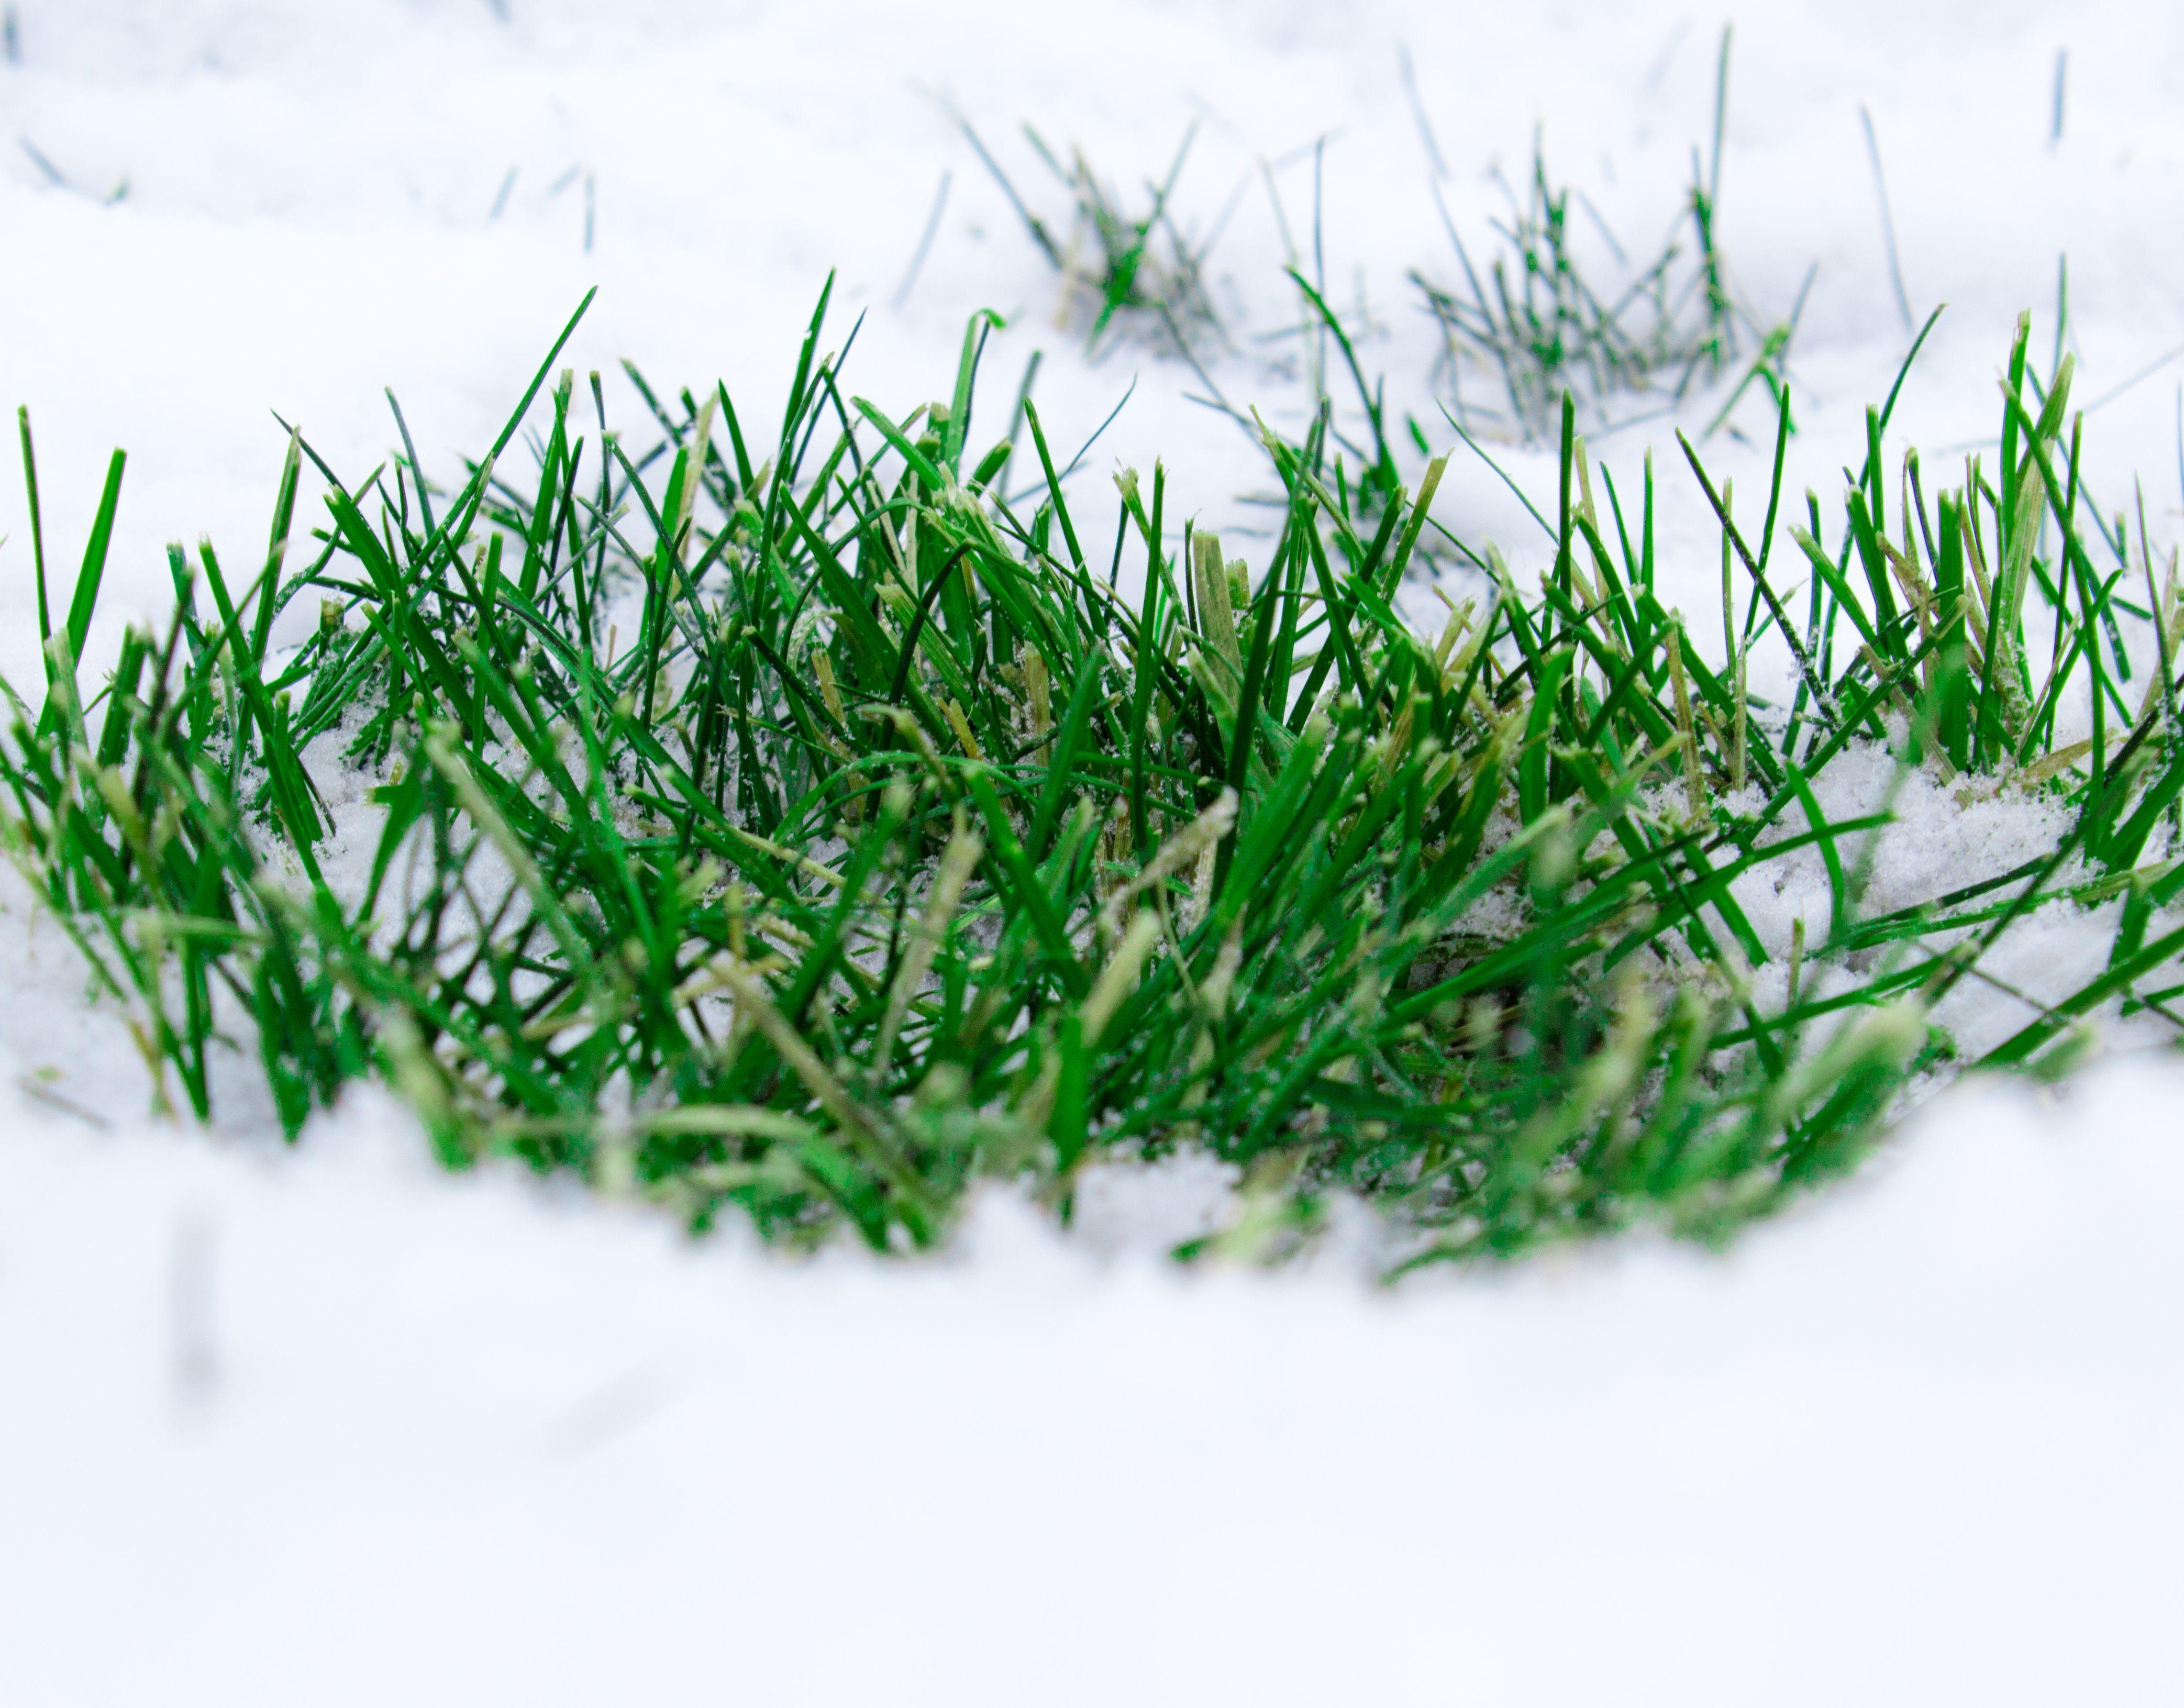 Green grass popping out of snow